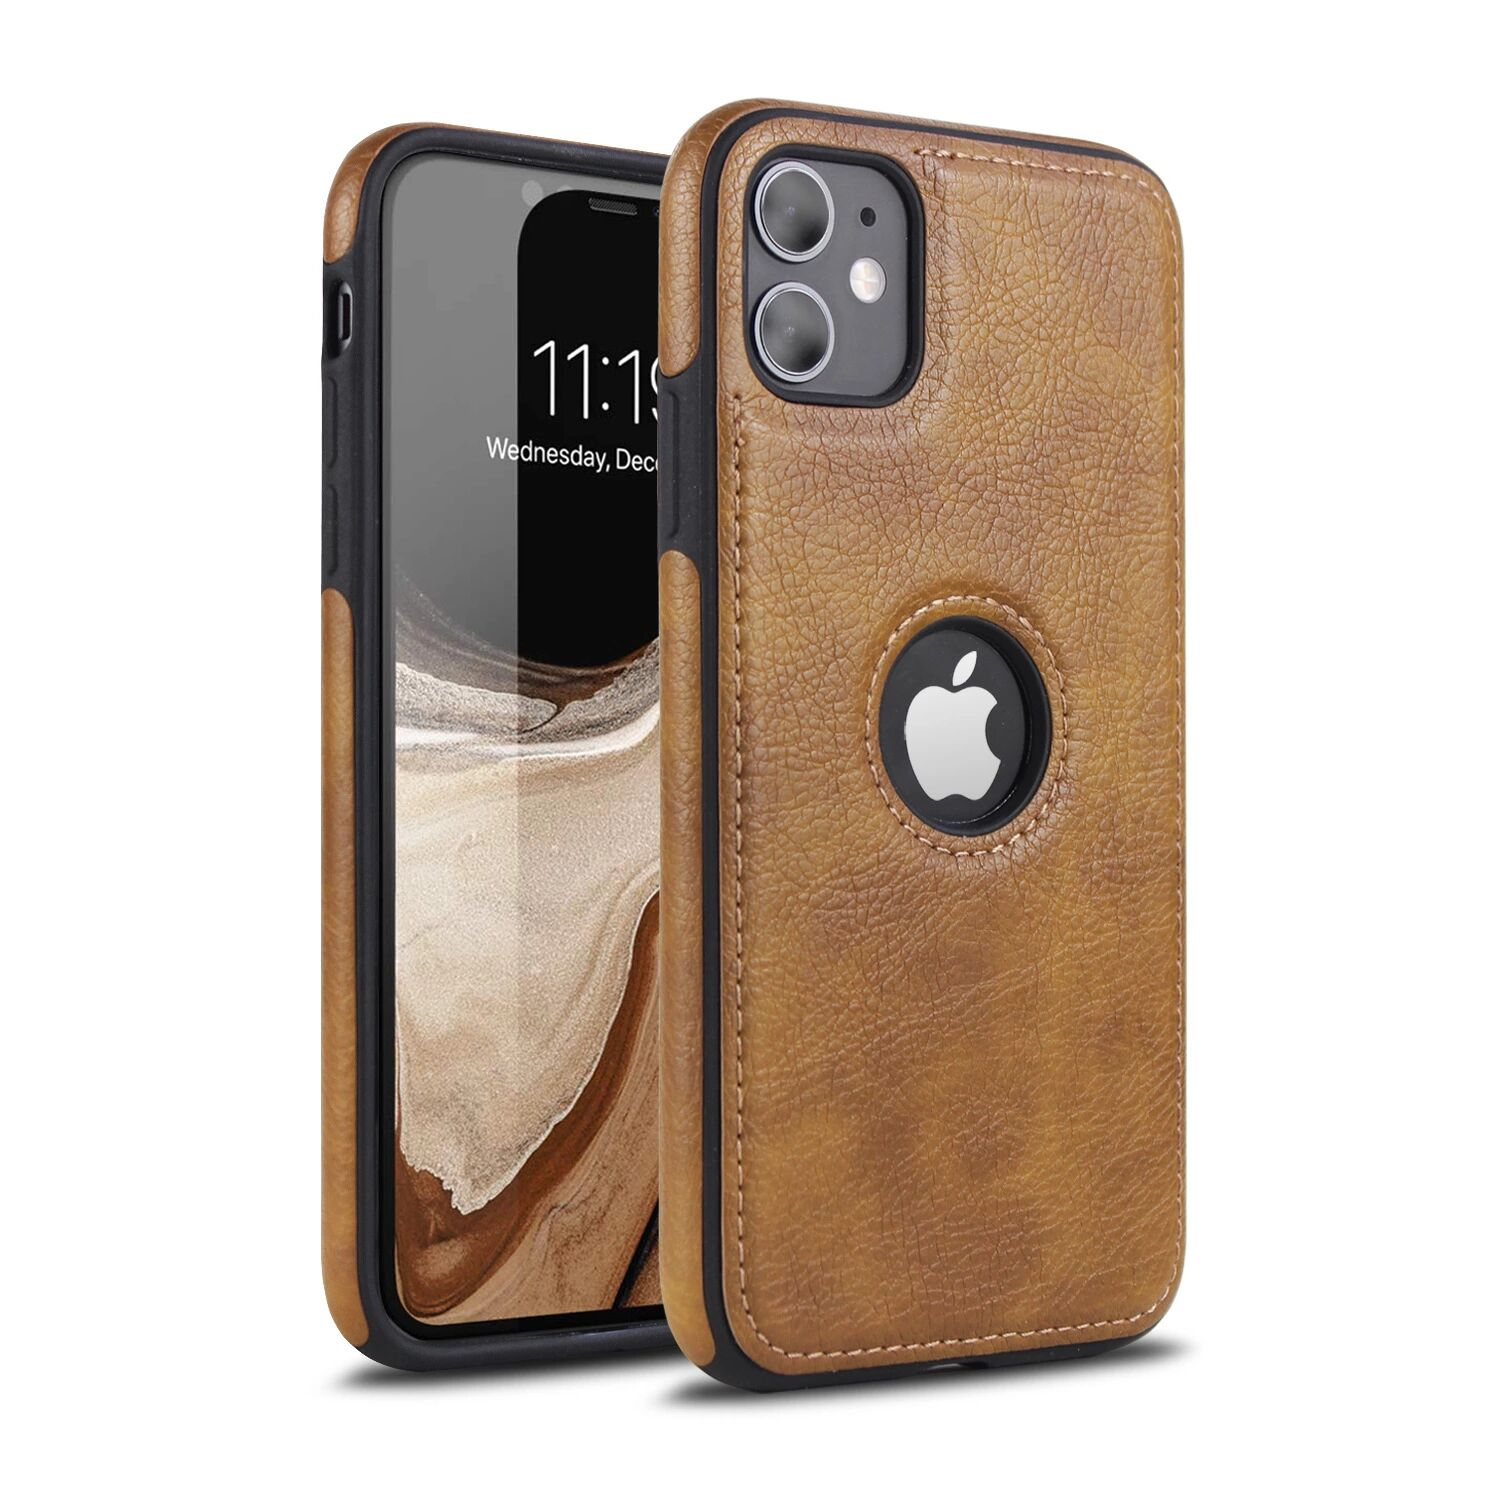 Applicable Car Line Skin Stitching Mobile Phone Skin Case For iPhone 11pro Max 3